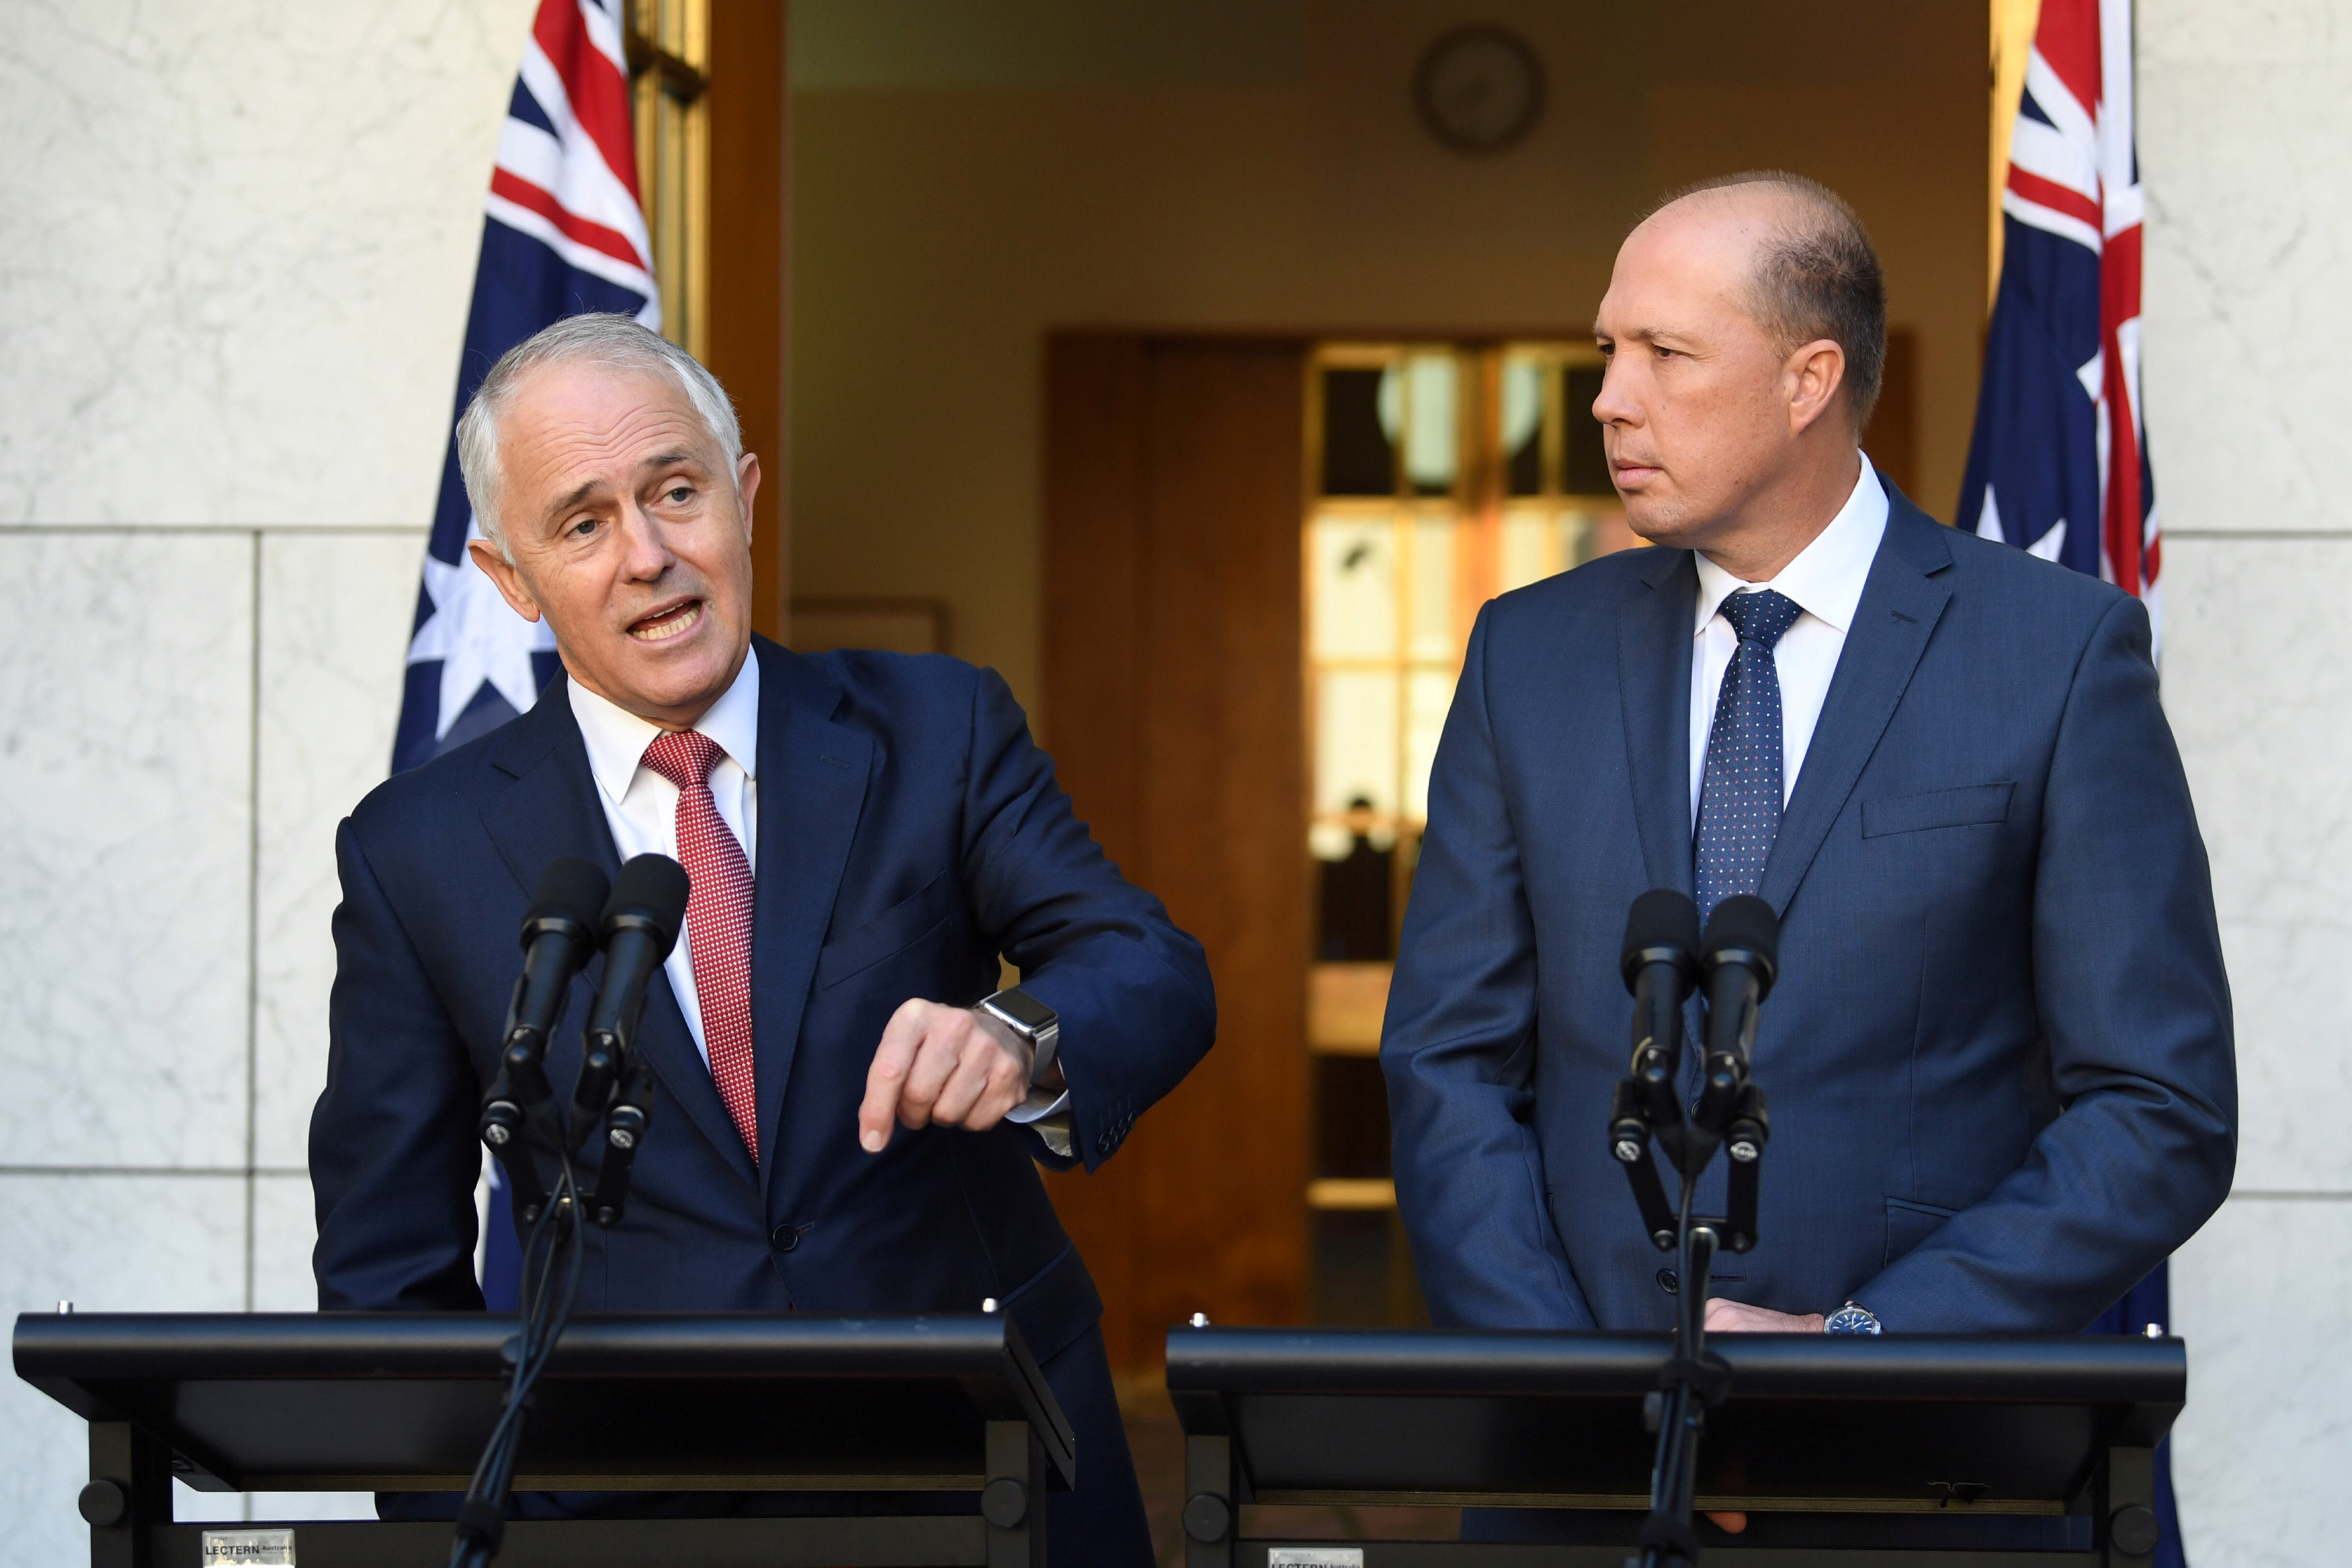 Australia's Prime Minister Malcolm Turnbull (L) and Minister for Immigration and Border Protection Peter Dutton speak on Australia's citizenship test during a press conference at Parliament House in Canberra, Australia on April 20, 2017. (AAP/Lukas Coch/via REUTERS)